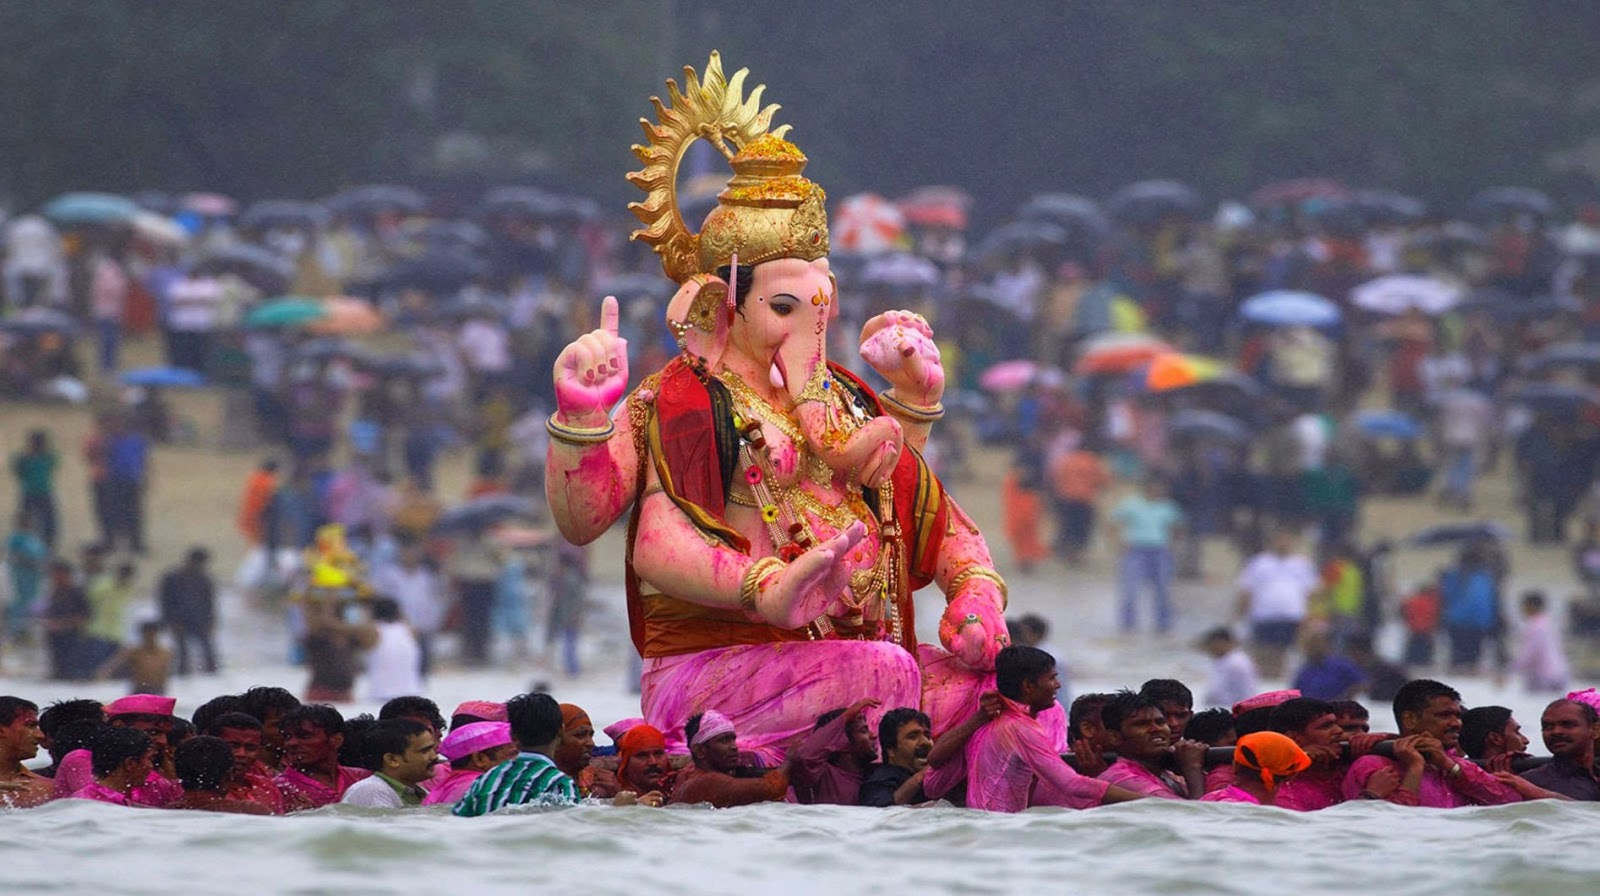 essay on lord ganesha lord ganesha pictures statue lord ganesha  happy vinayaka chavithi 1857 was a historic point year for and moreso regards to n flexibility essay on lord ganesha